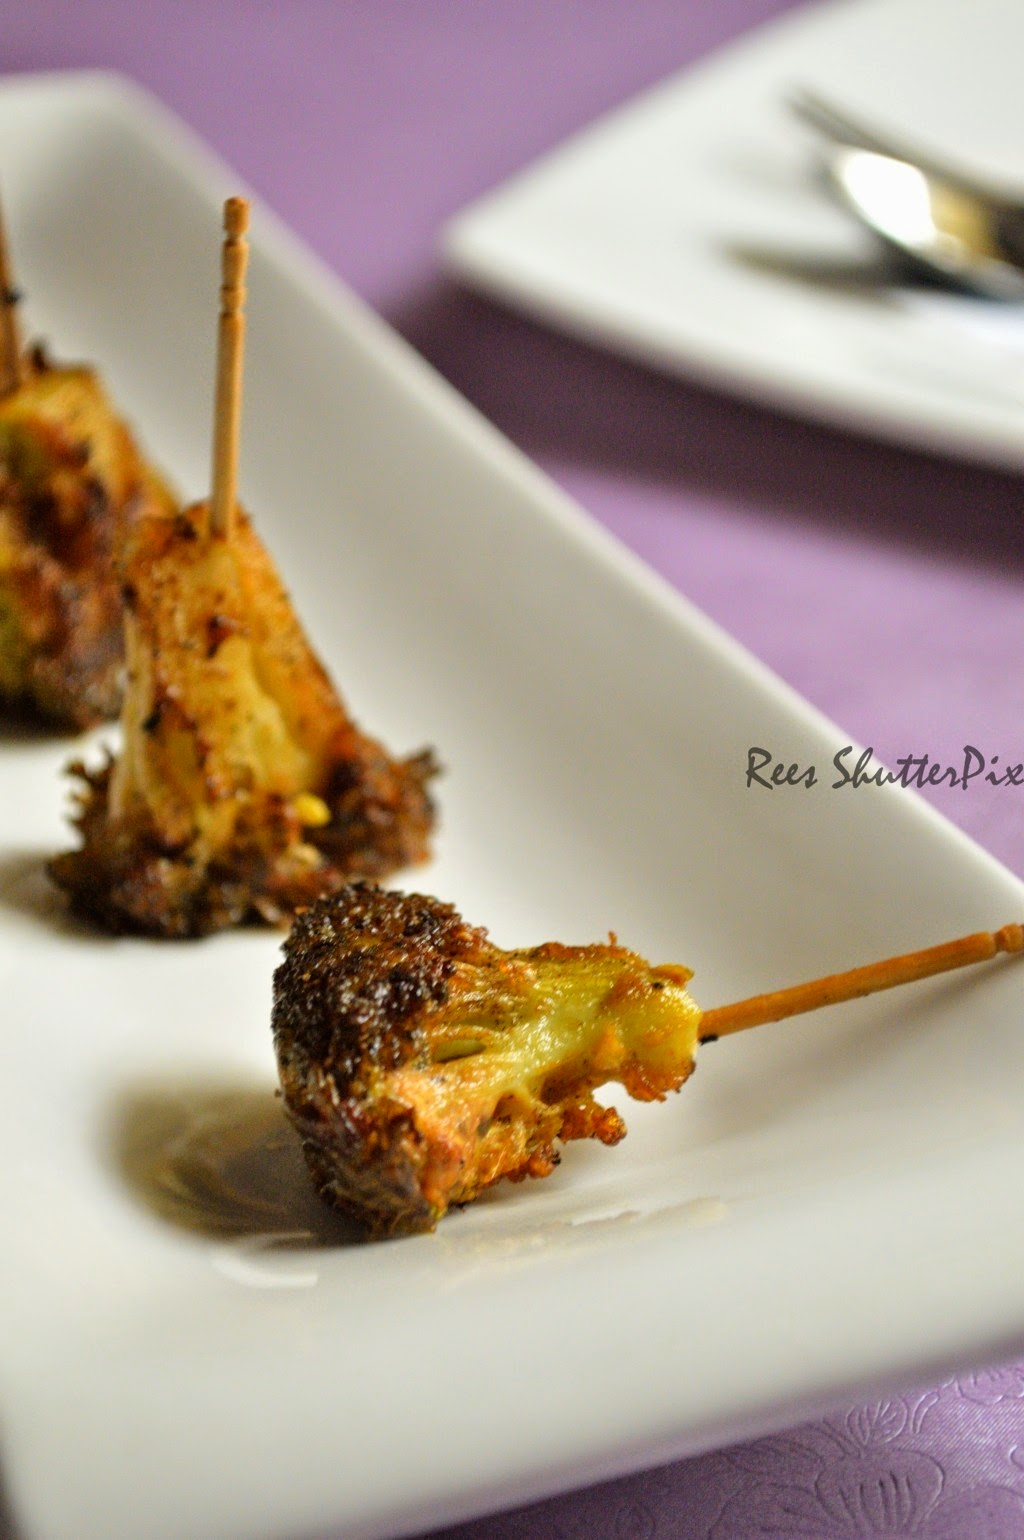 easy broccoli fry recipe, step by step picture recipe broccoli fry or 65, broccoli lollipop recipe, broccoli recipes, restaurant style broccoli recipe